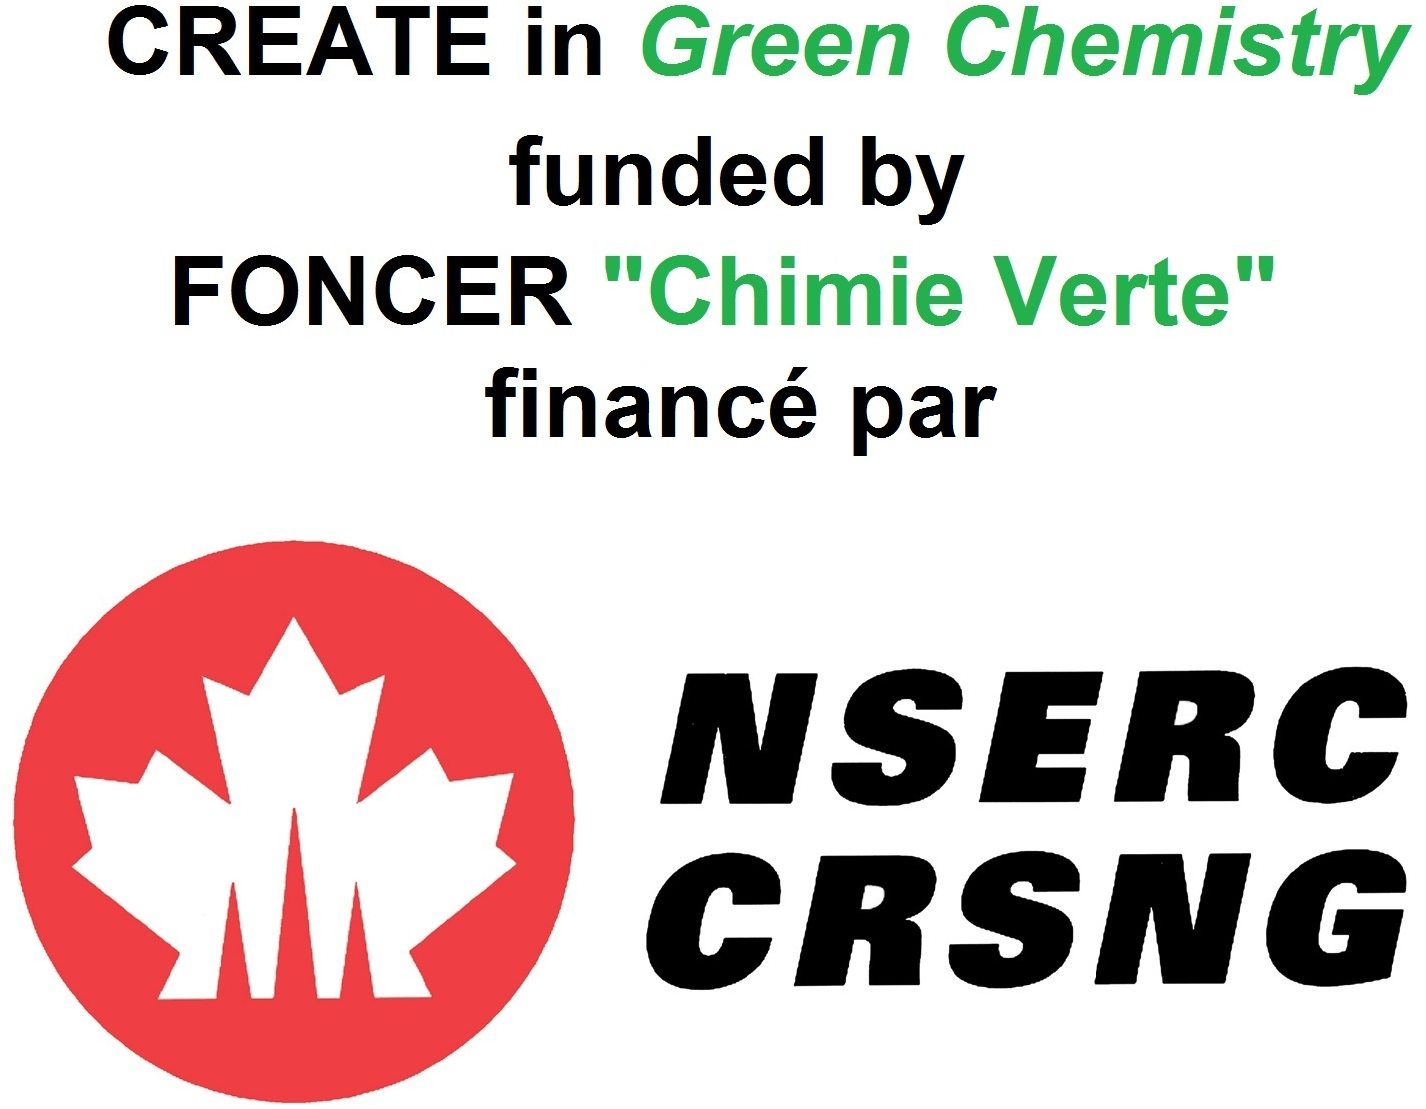 NSERC CREATE in Green Chemistry